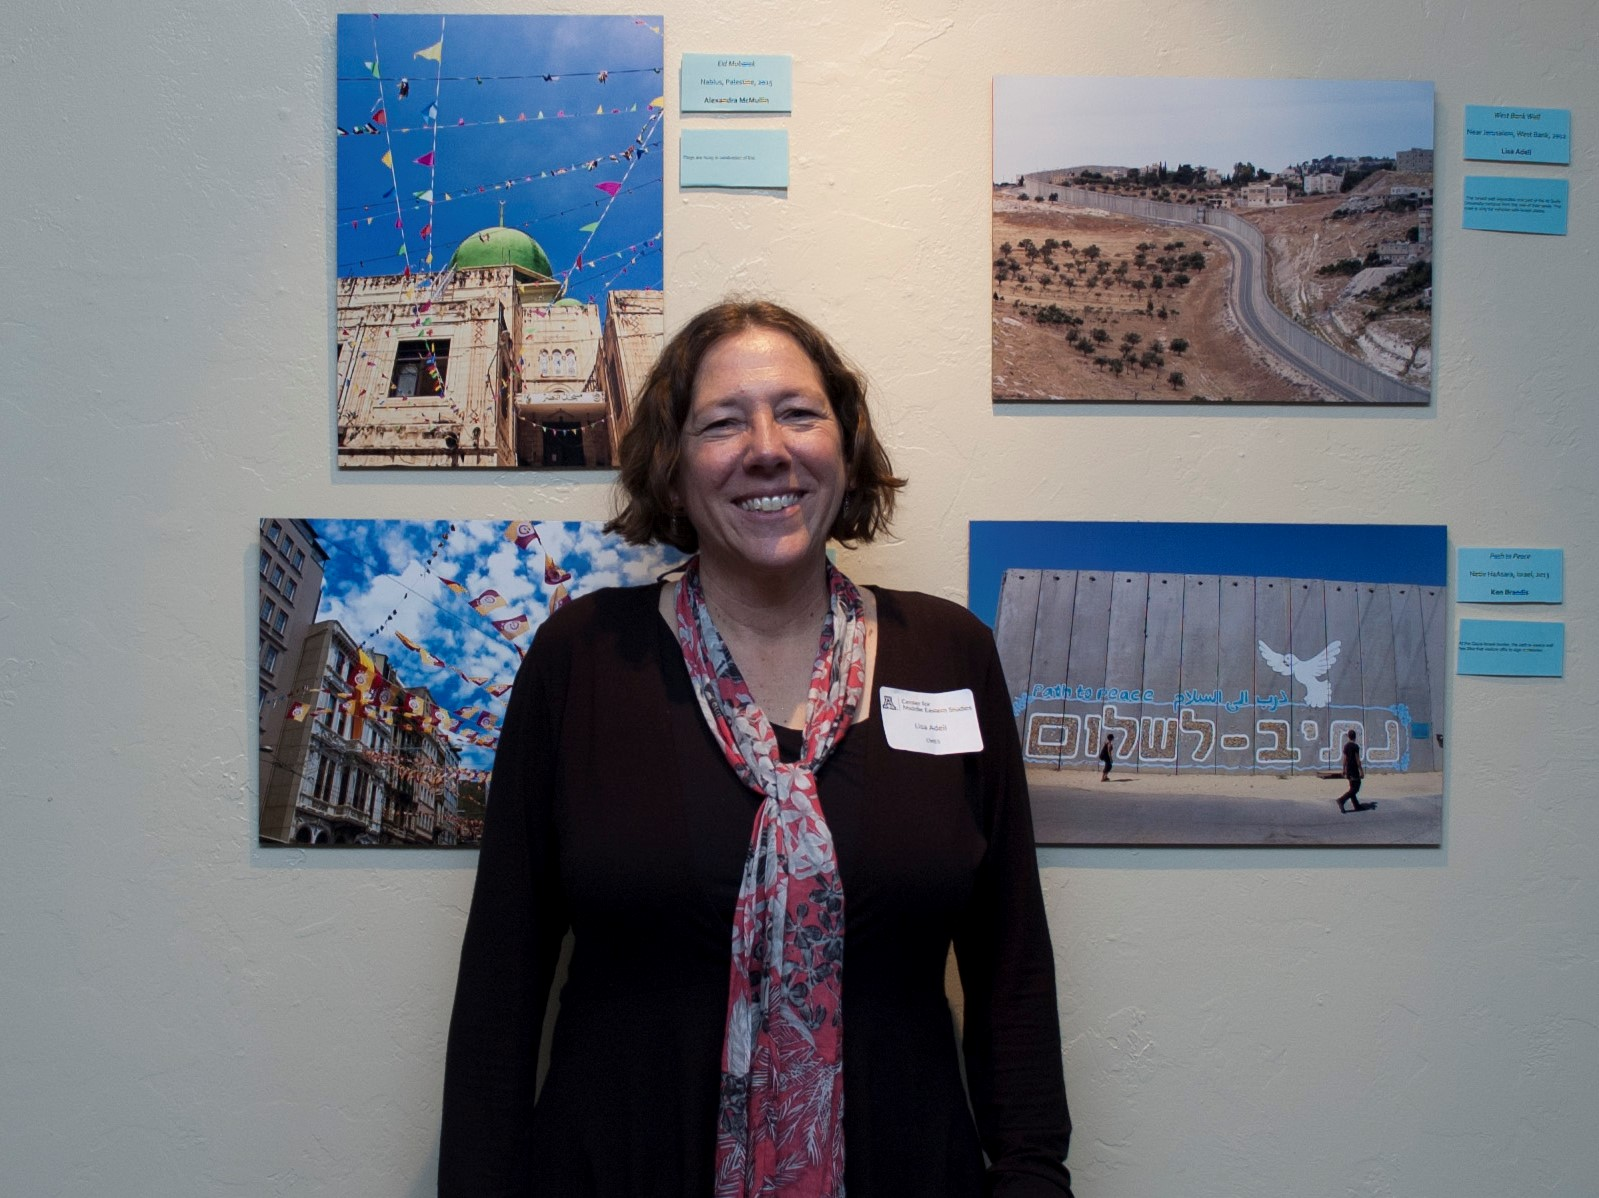 Lisa Adeli at the CMES Photo Exhibit in spring 2016.